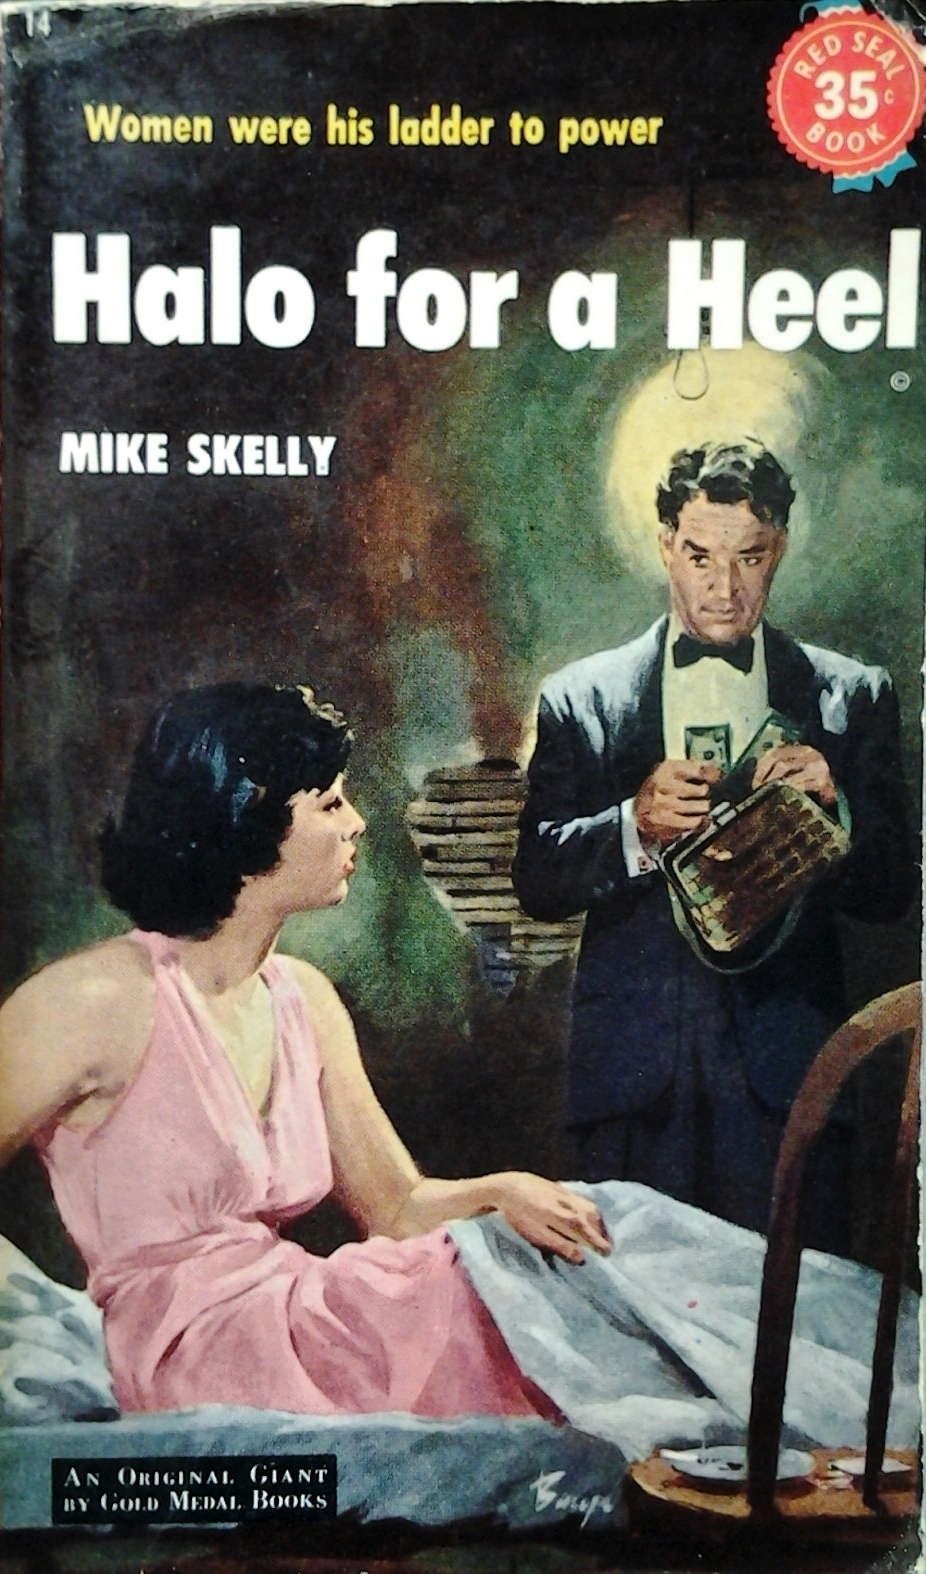 Halo for a Heel by Mike Shelly PB Red Seal 1952 35c cover